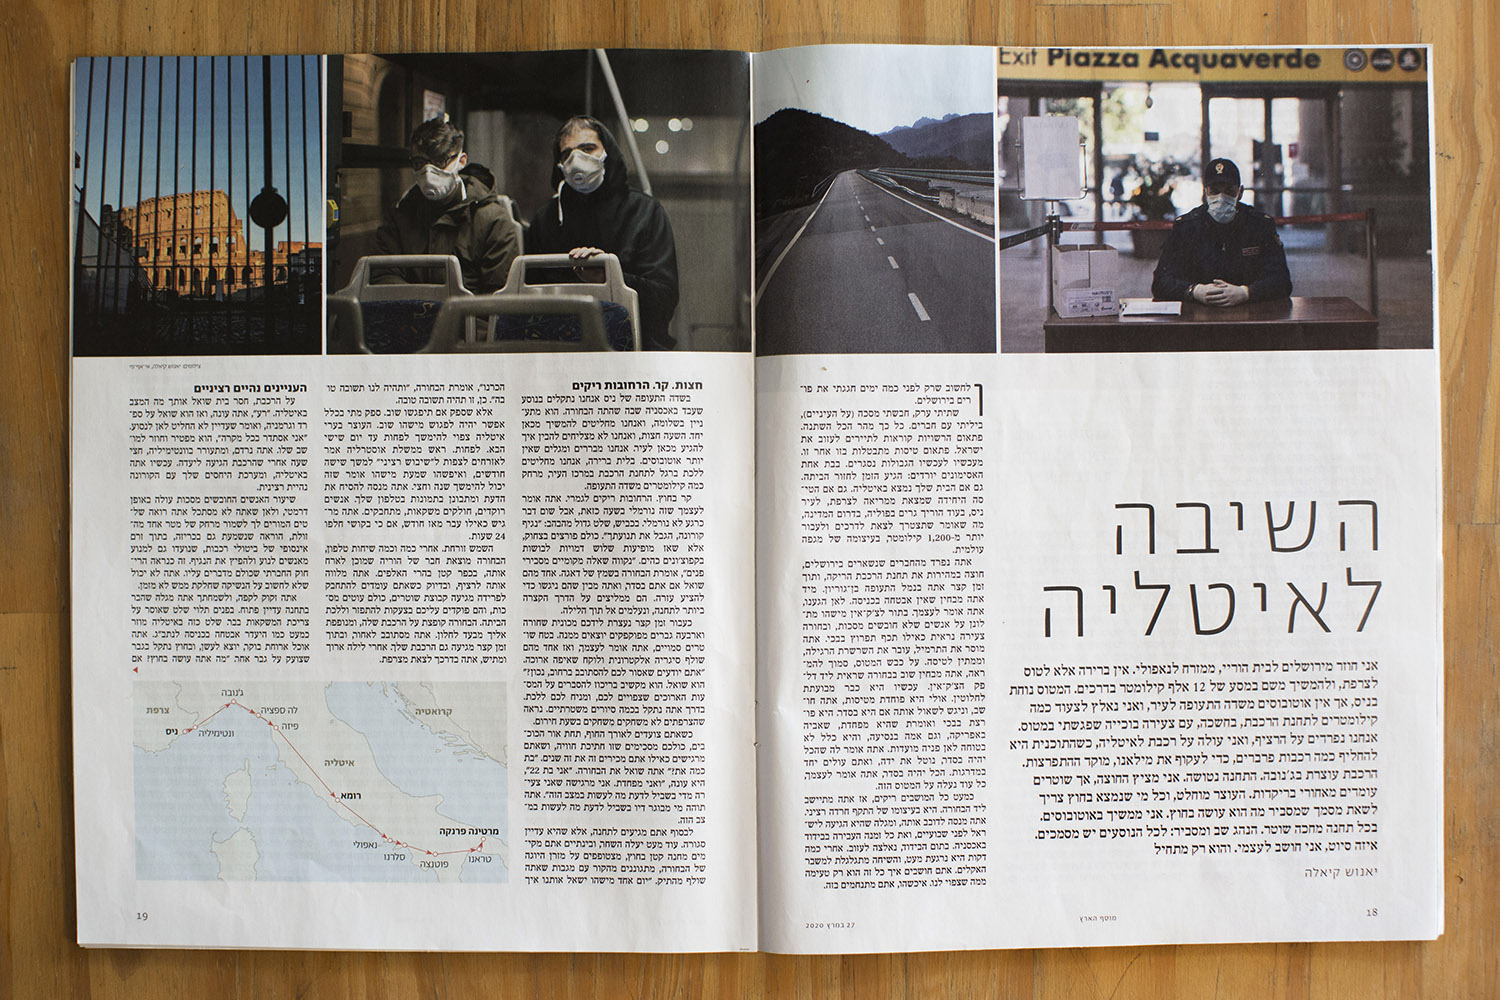 Ha'aretz weekend magazine: Journey through Italy in the time of Corona. (March 2020) link to story